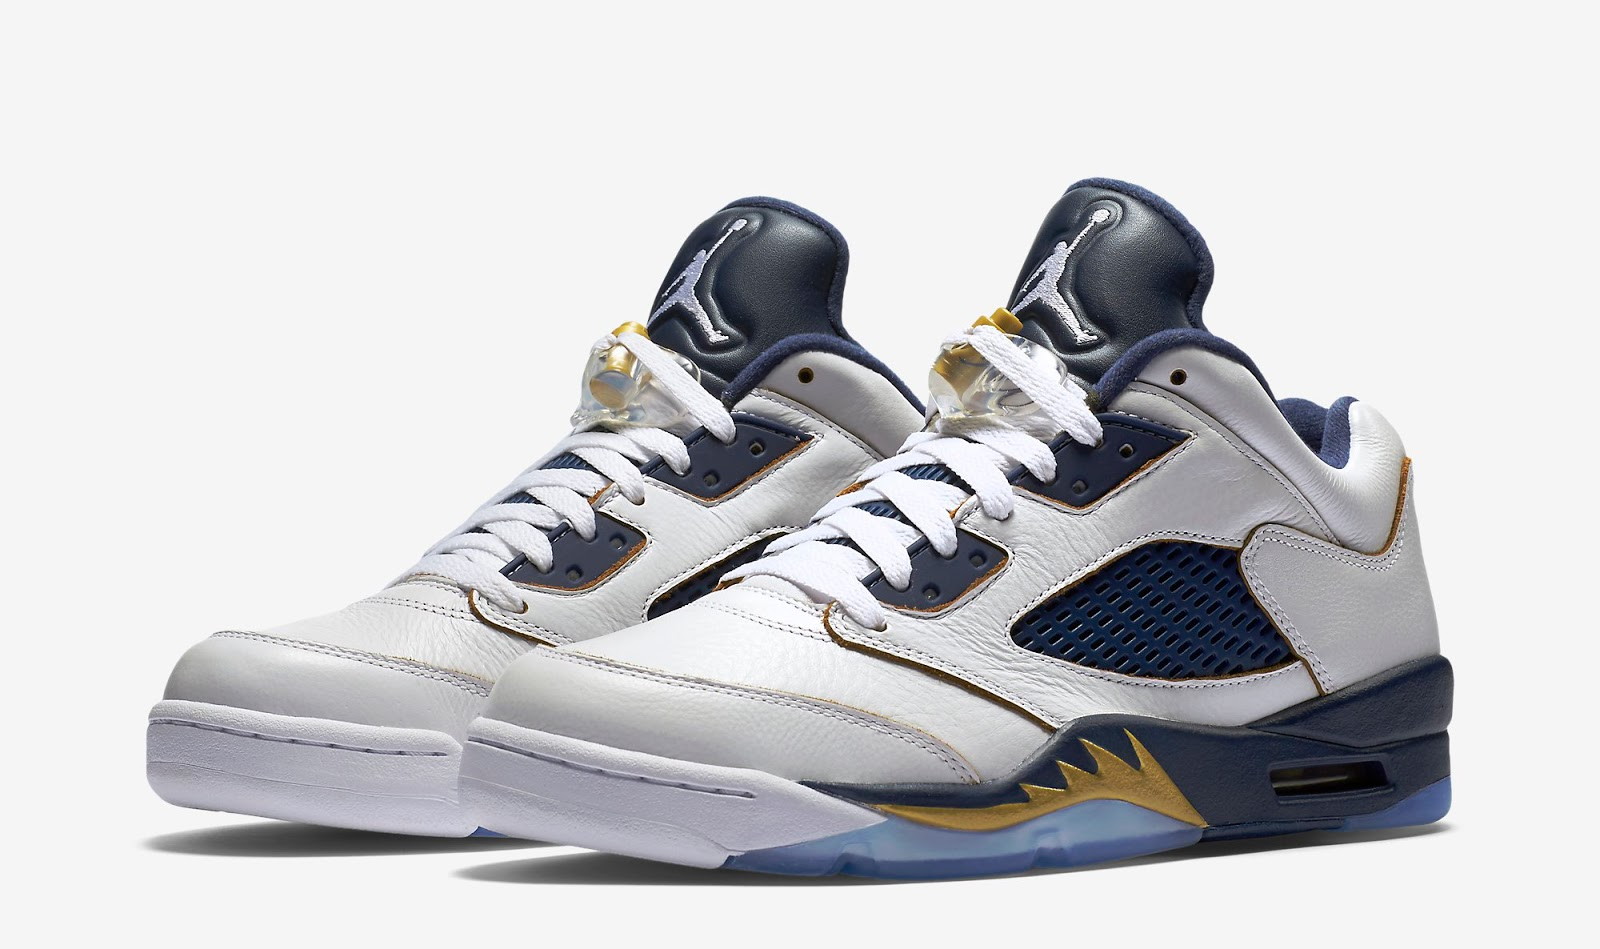 d93c784ad7ba59 ... olympic metallic gold mens air jordans 5s basketball shoes aaaa grade  coupon air jordan 5 retro low dunk from above white metallic gold star  midnight ...